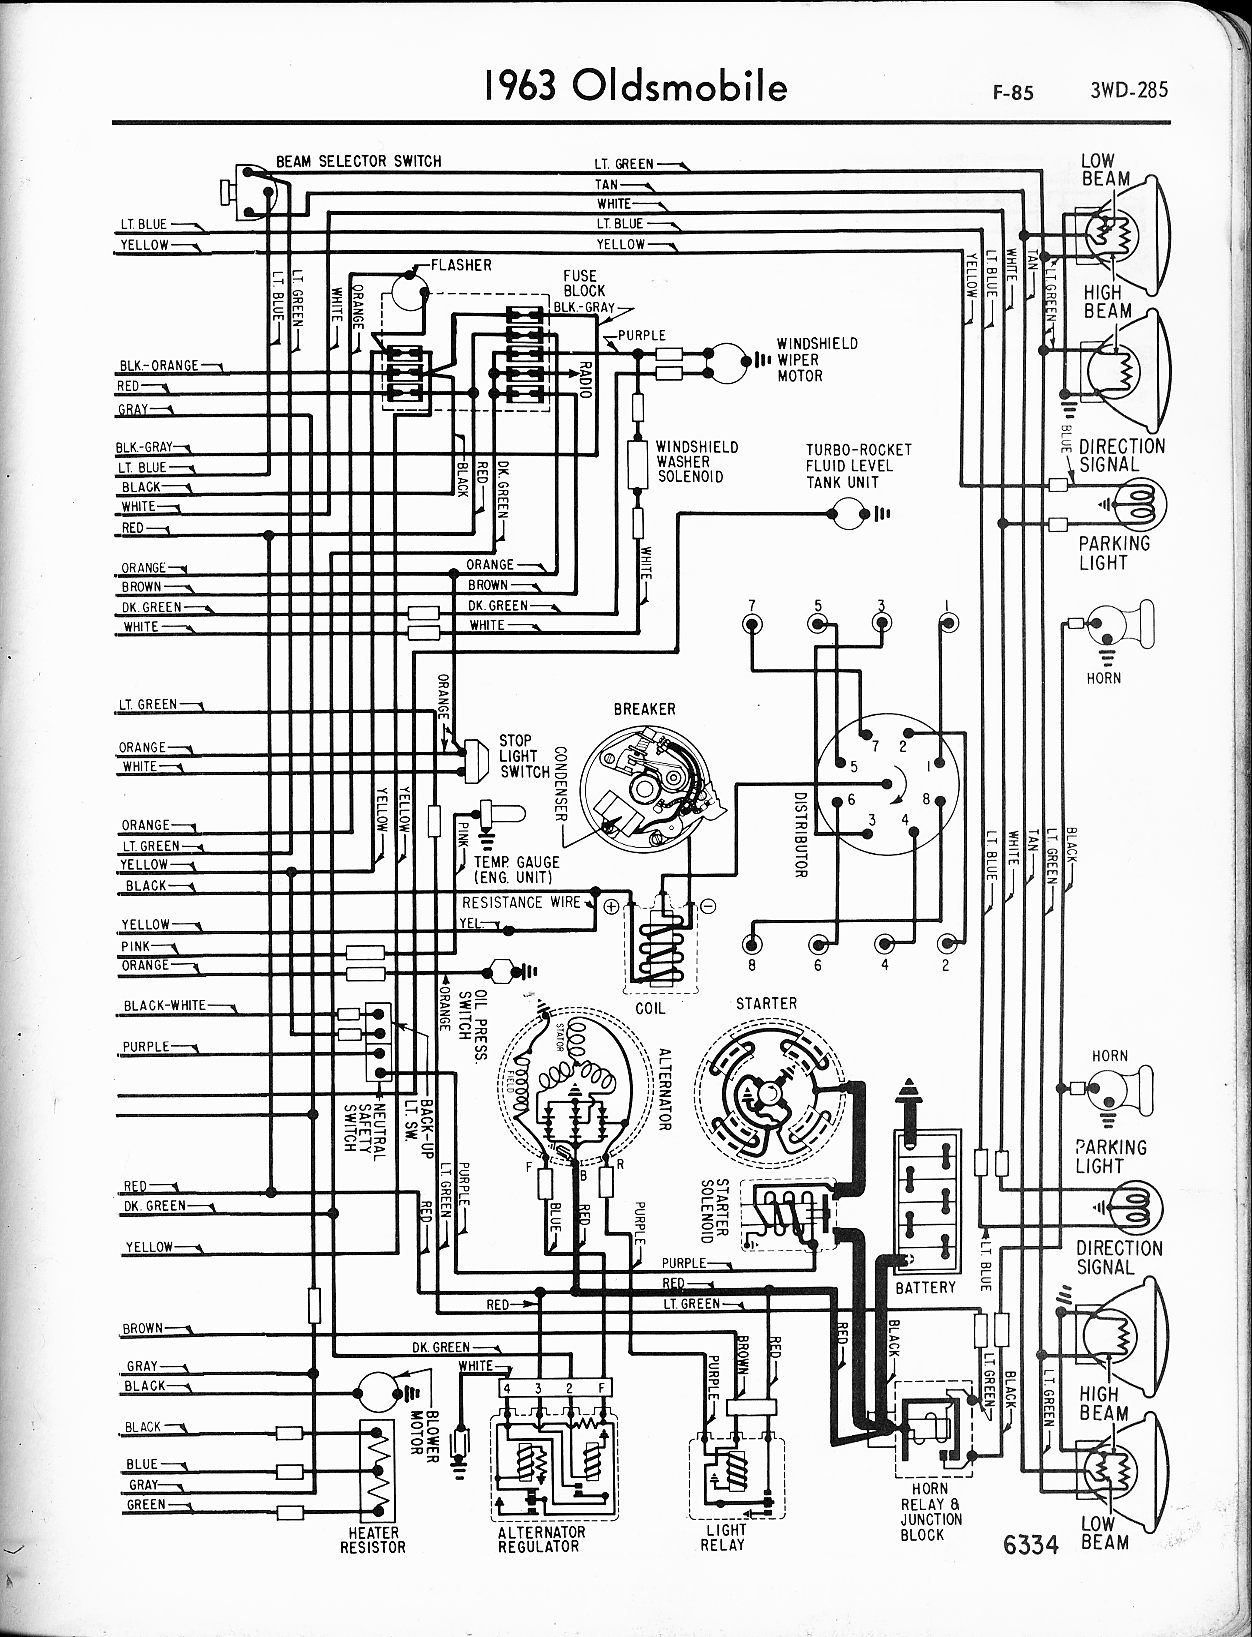 hight resolution of oldsmobile wiring diagrams the old car manual project rh oldcarmanualproject com 1993 oldsmobile wiring diagrams 1969